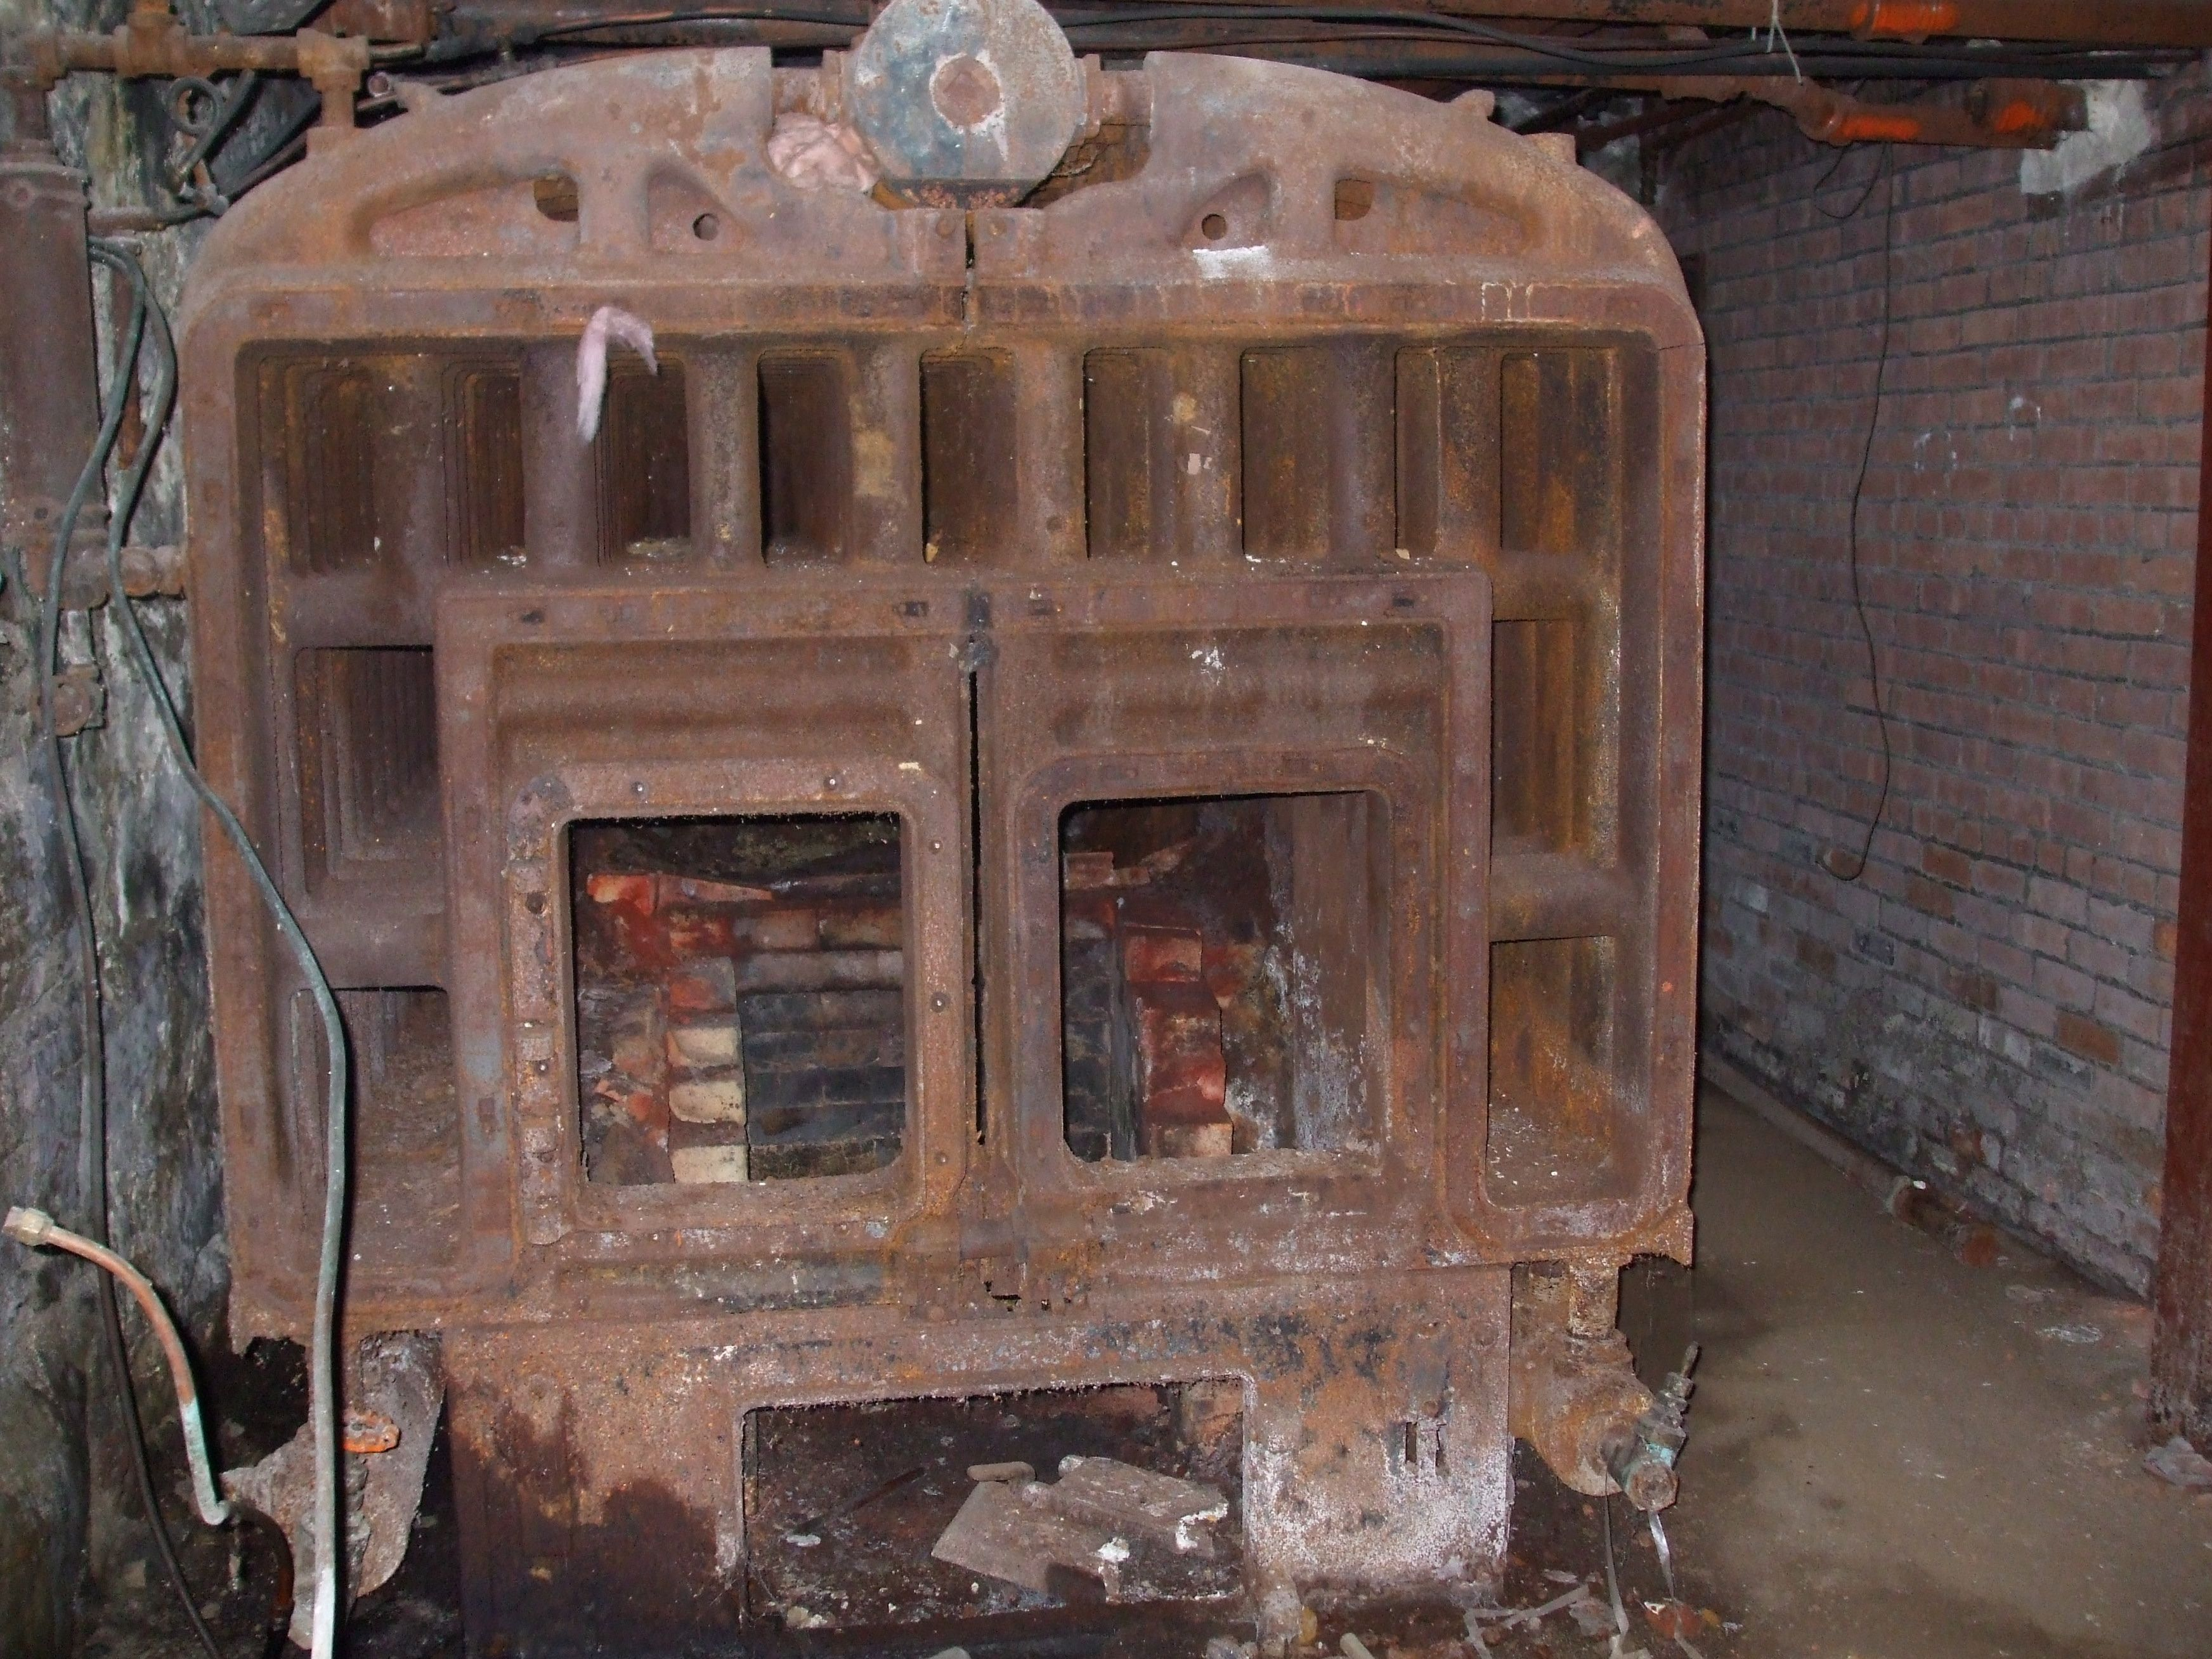 Do You Believe This Old Furnace It Used To Heat A Mansion